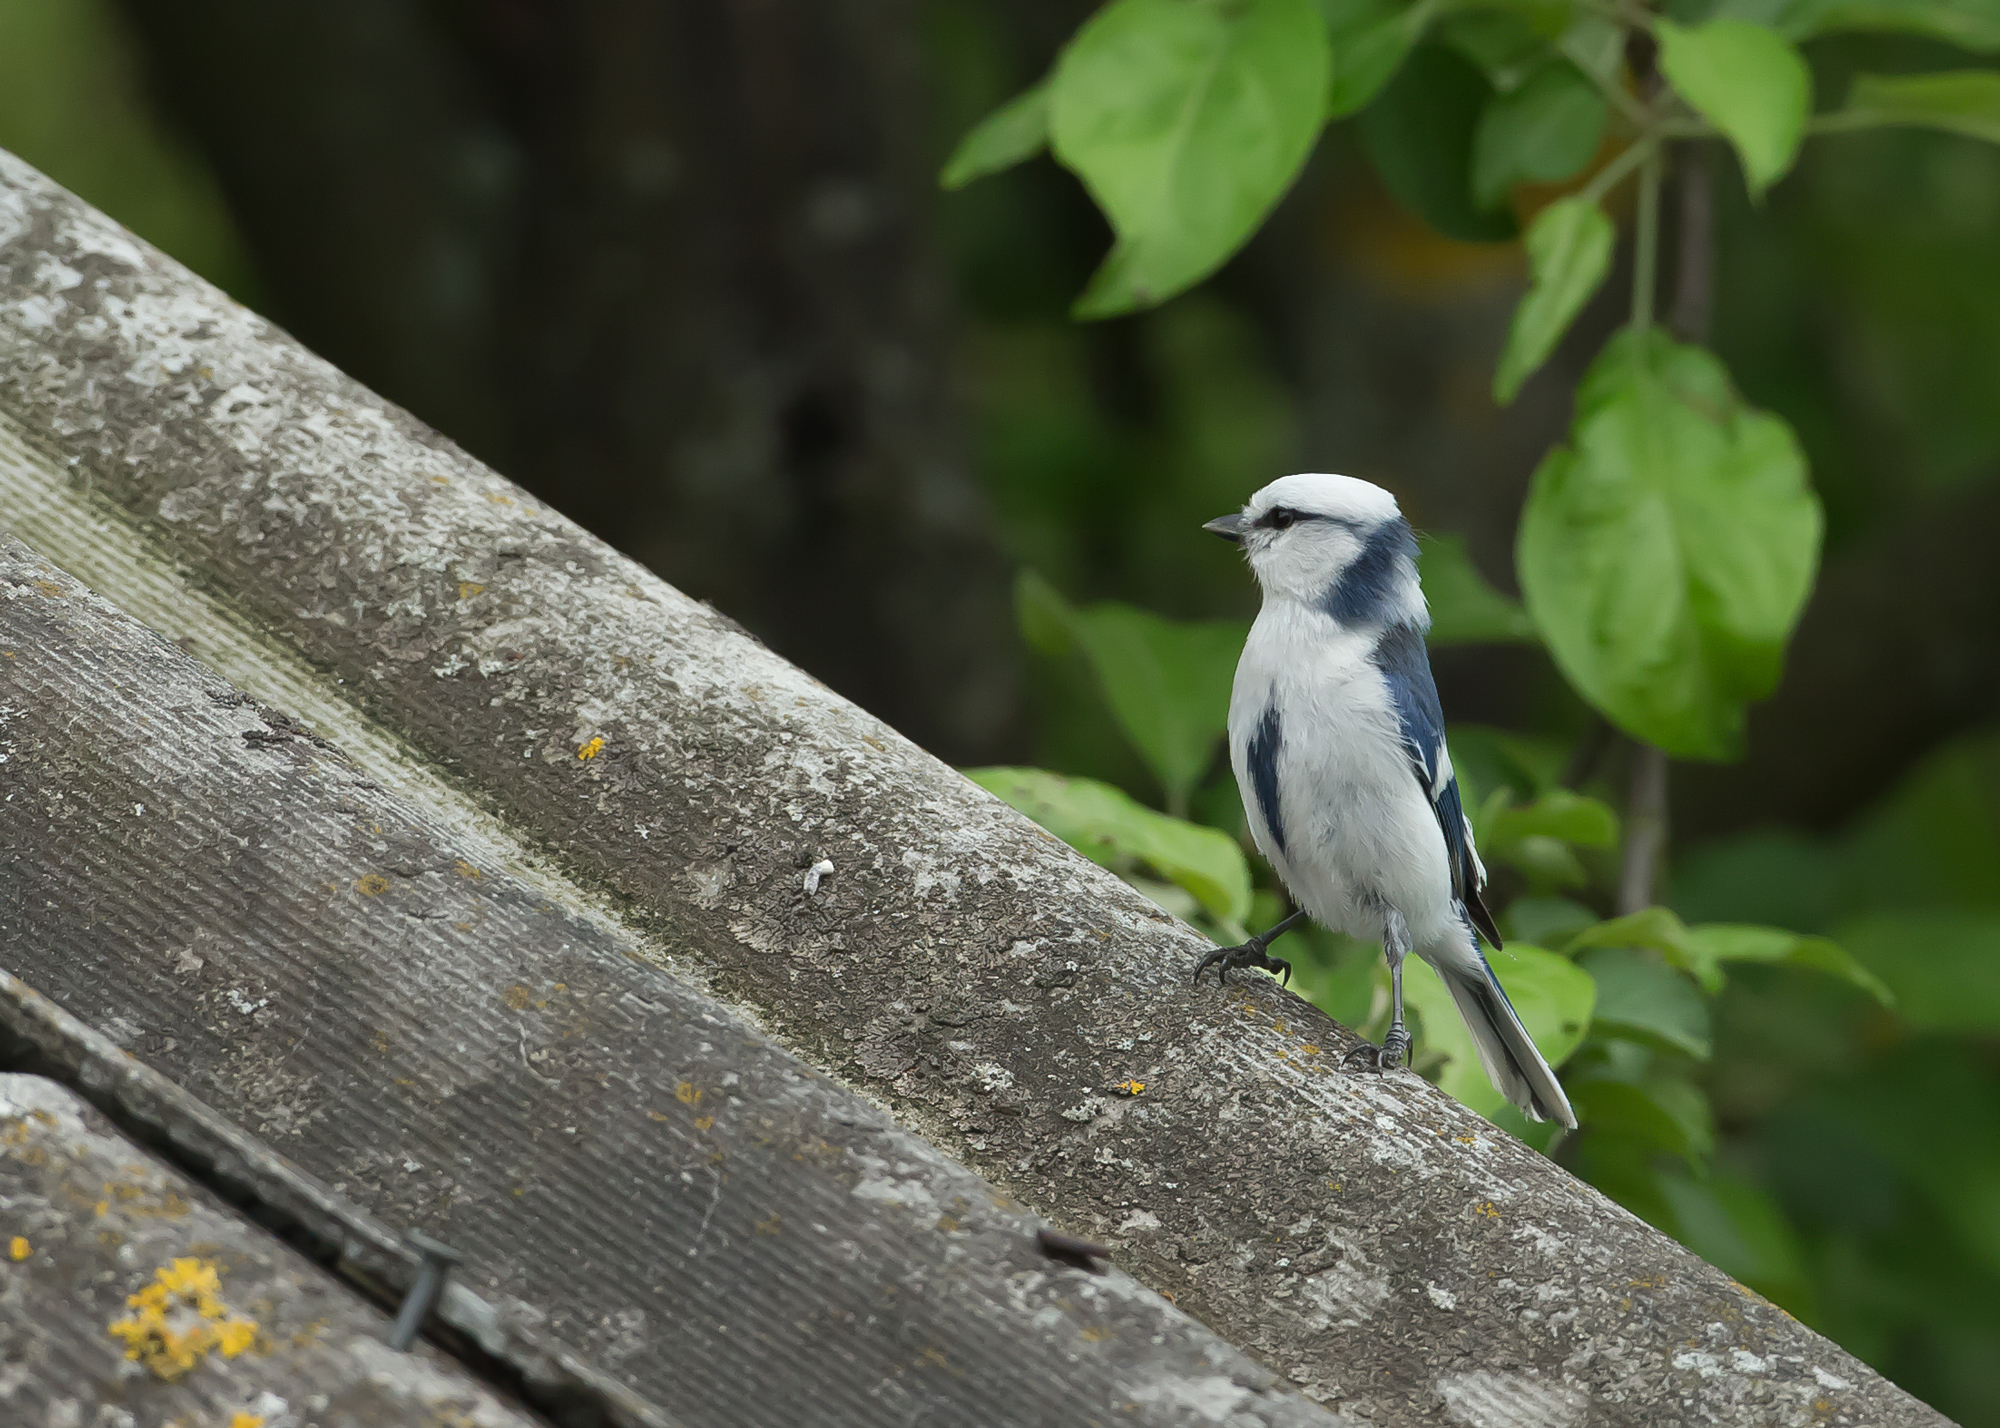 Azure Tit, bird of the trip for most!